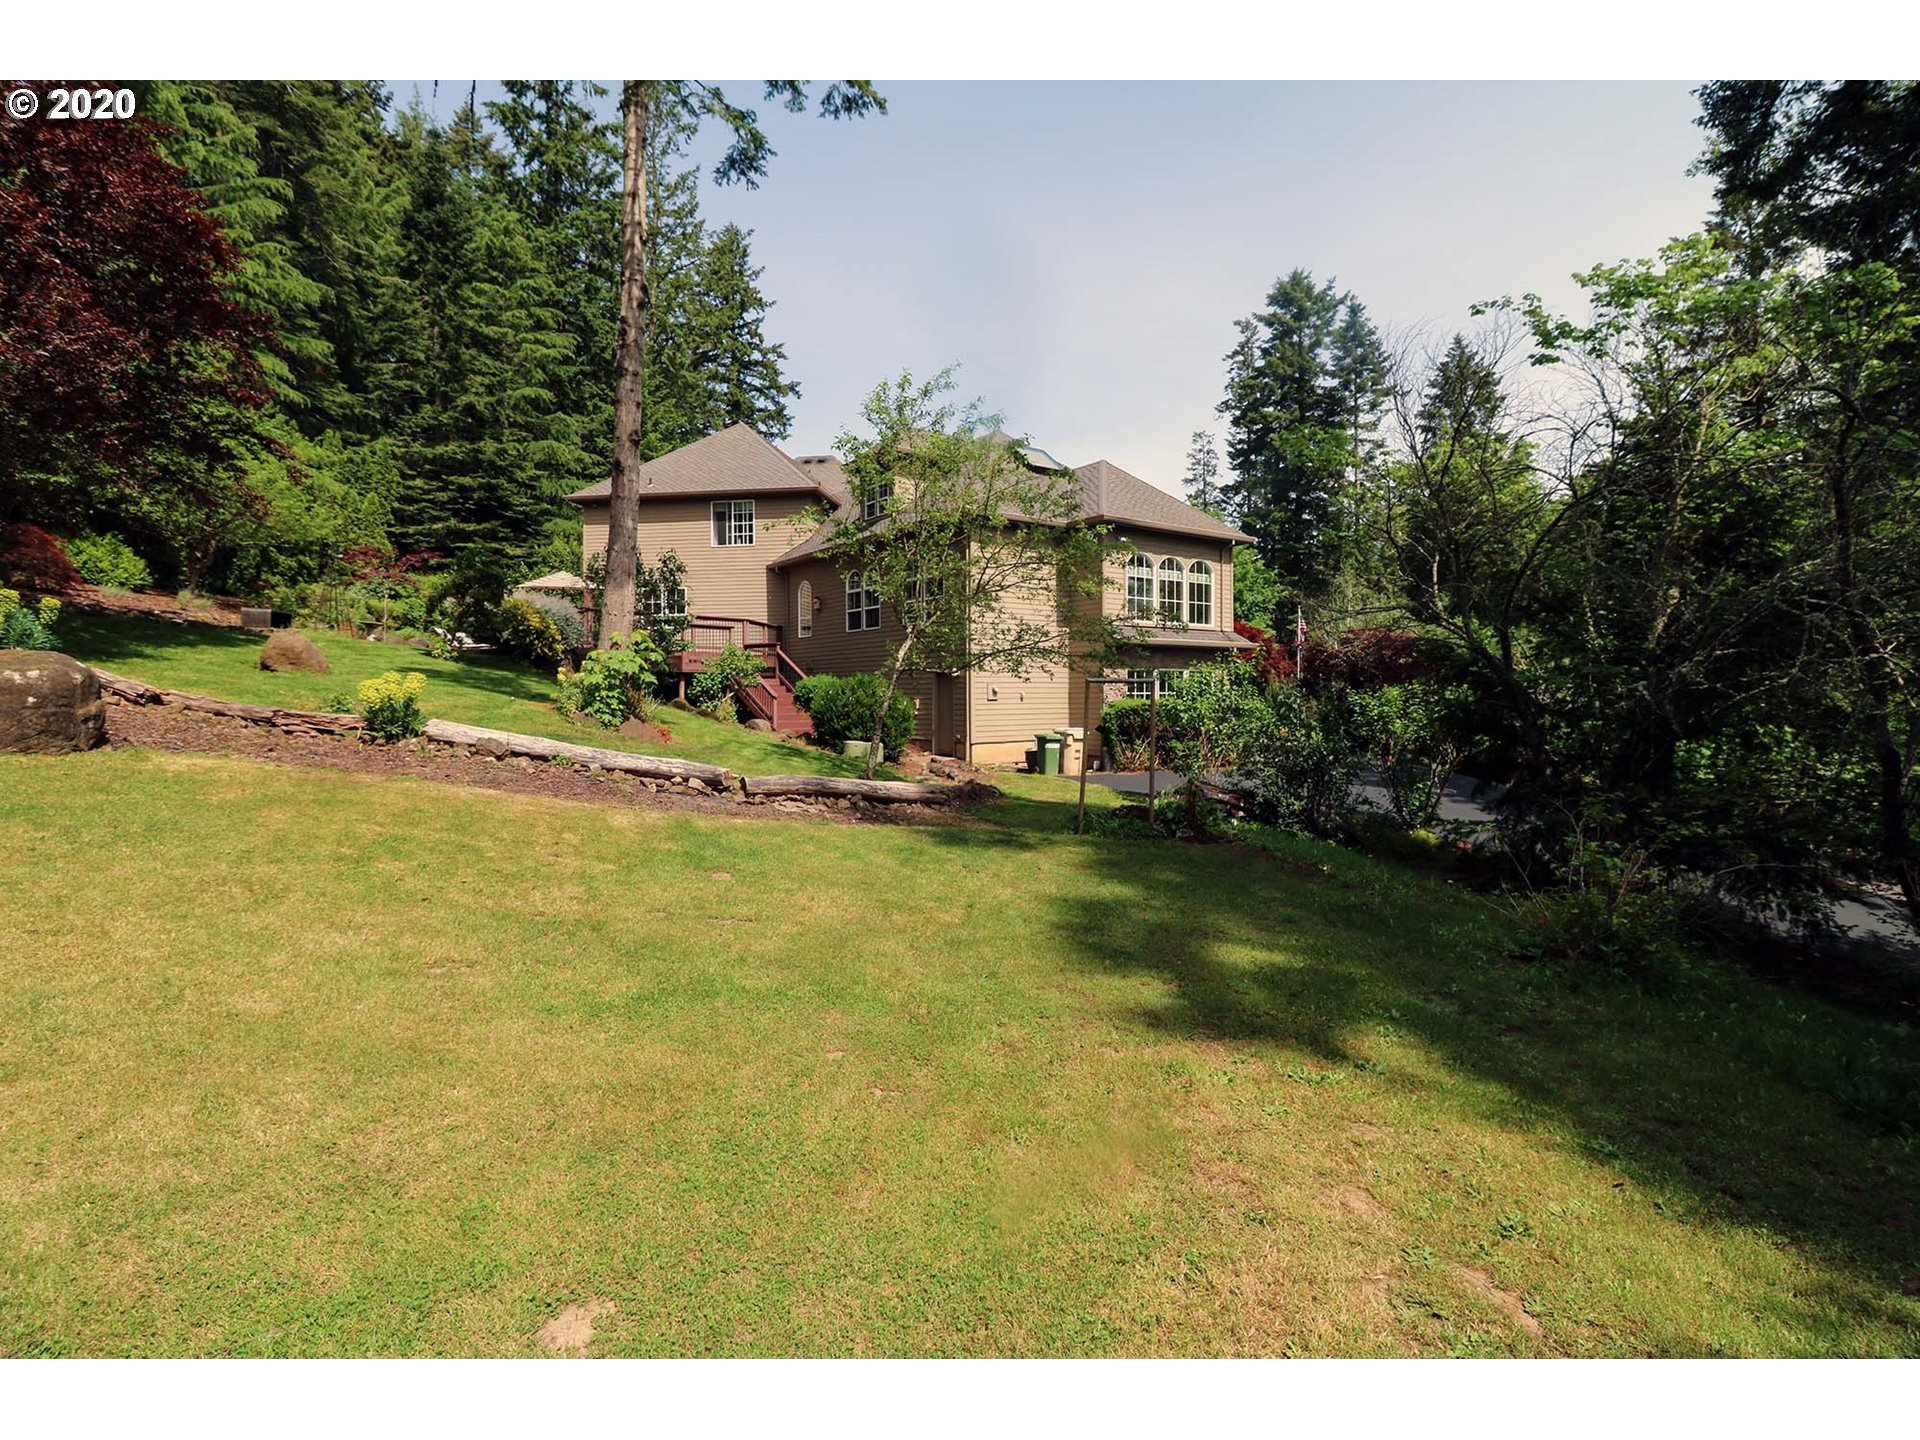 Incredible location close to Portland, yet surrounded by gorgeous farmland & forest. House sits on a private acre w/neighborhood tennis, river access & boat launch. Walls of windows bring in natural light w/spectacular 2 story windows in living room. Gourmet kitchen has hardwood floors & gas cook island w/huge deck for entertaining. Master on main has gas fireplace-garden tub-walk in shower & huge closet. Upstairs family room has soaring vaults & skylight; main floor bonus is 962SF See 2 videos